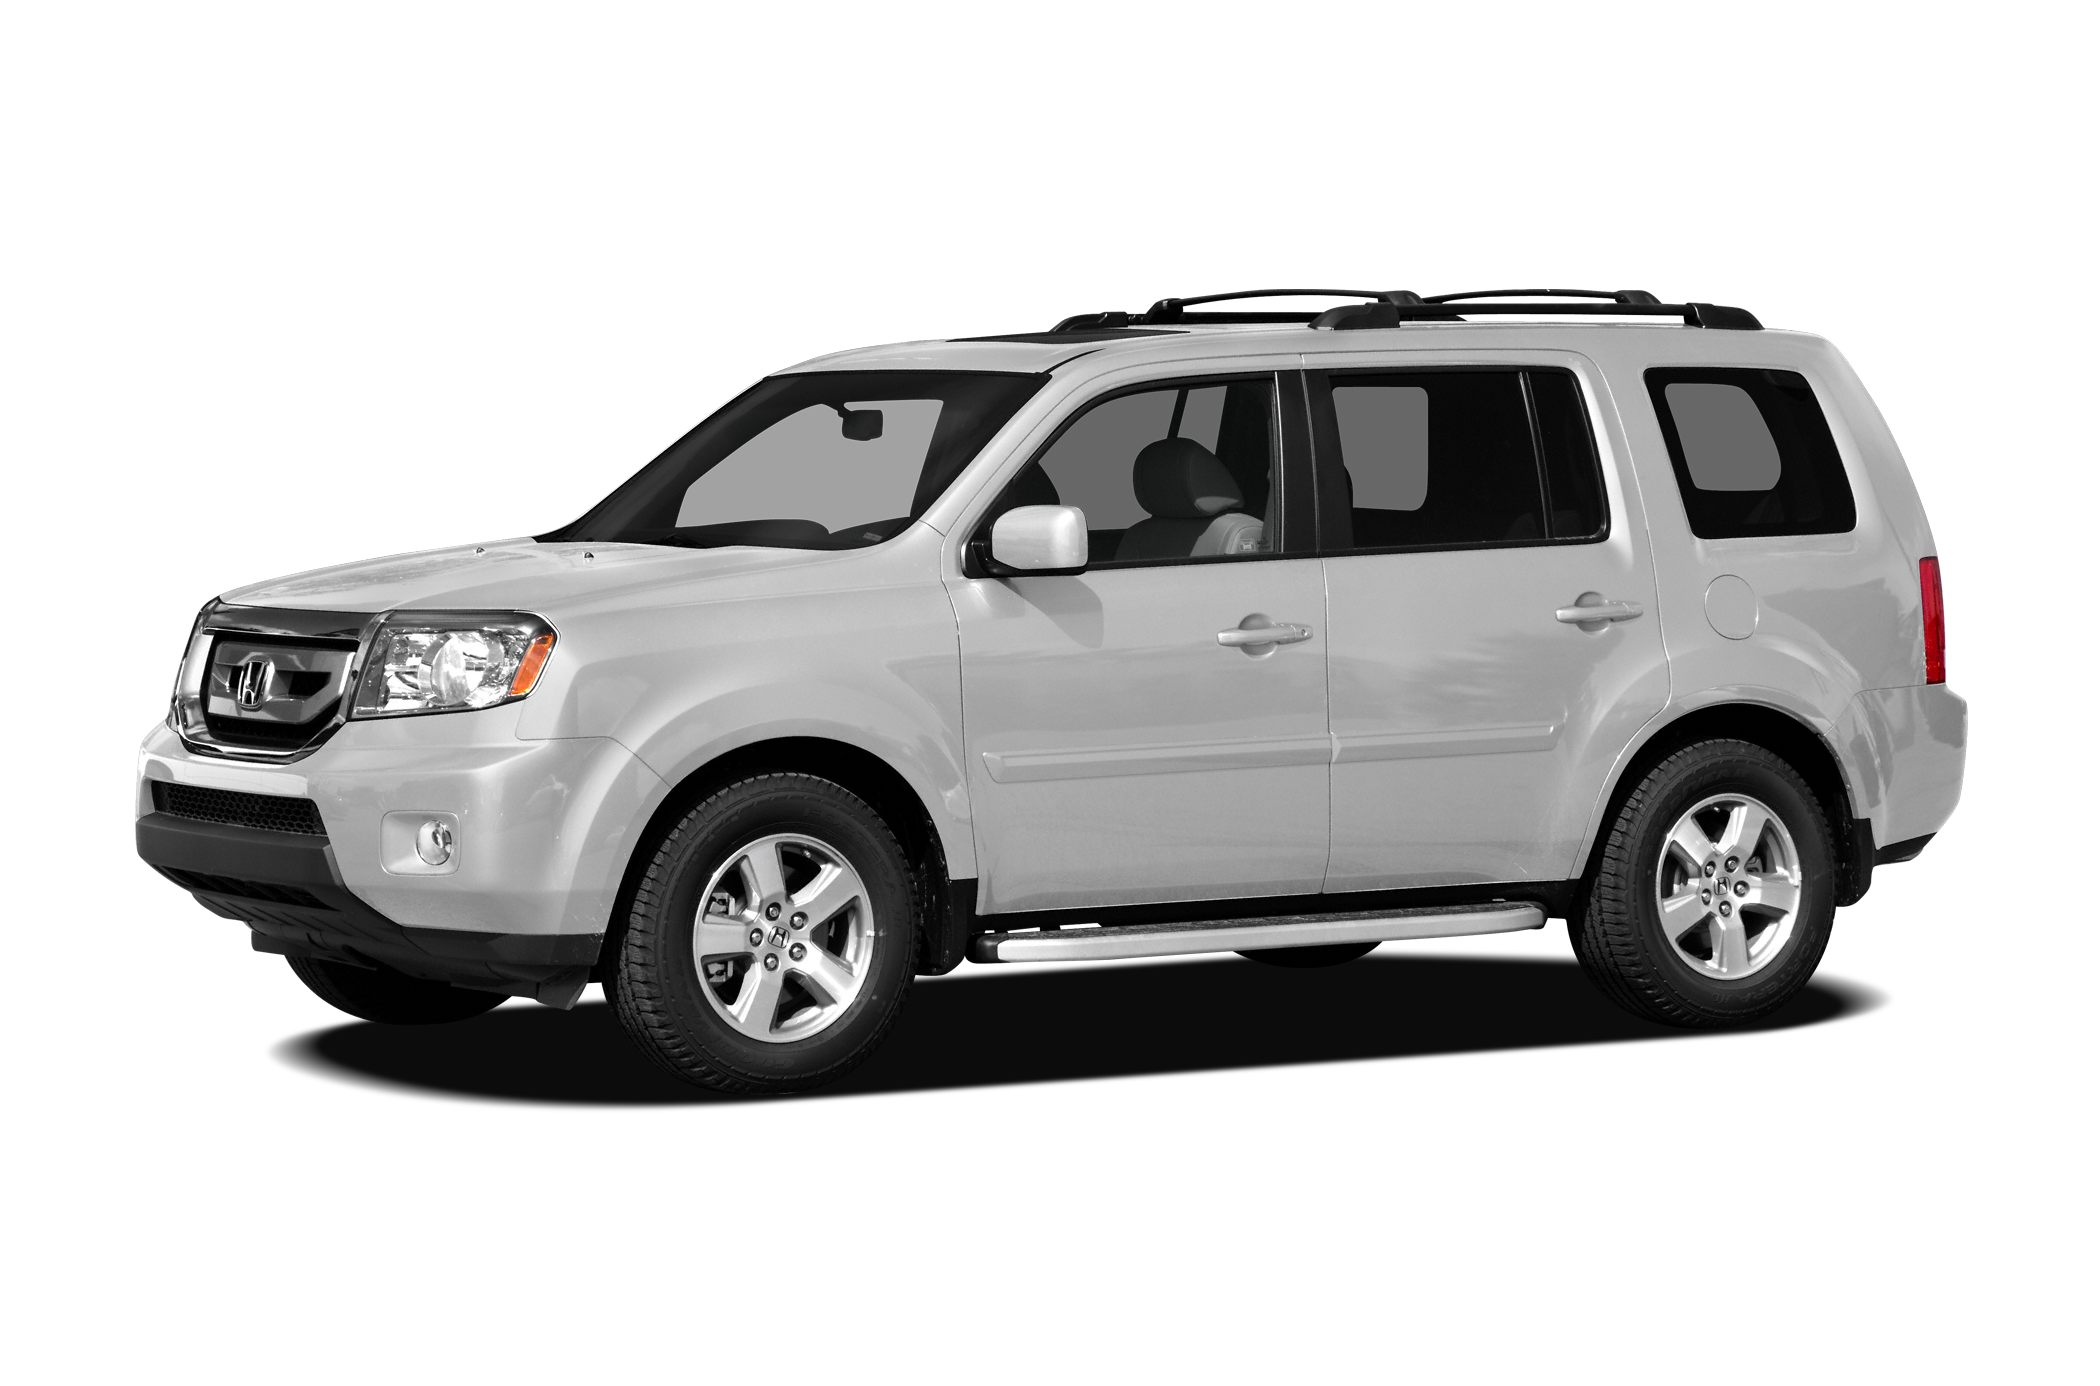 2011 Honda Pilot EX SUV for sale in Kilgore for $17,946 with 61,263 miles.